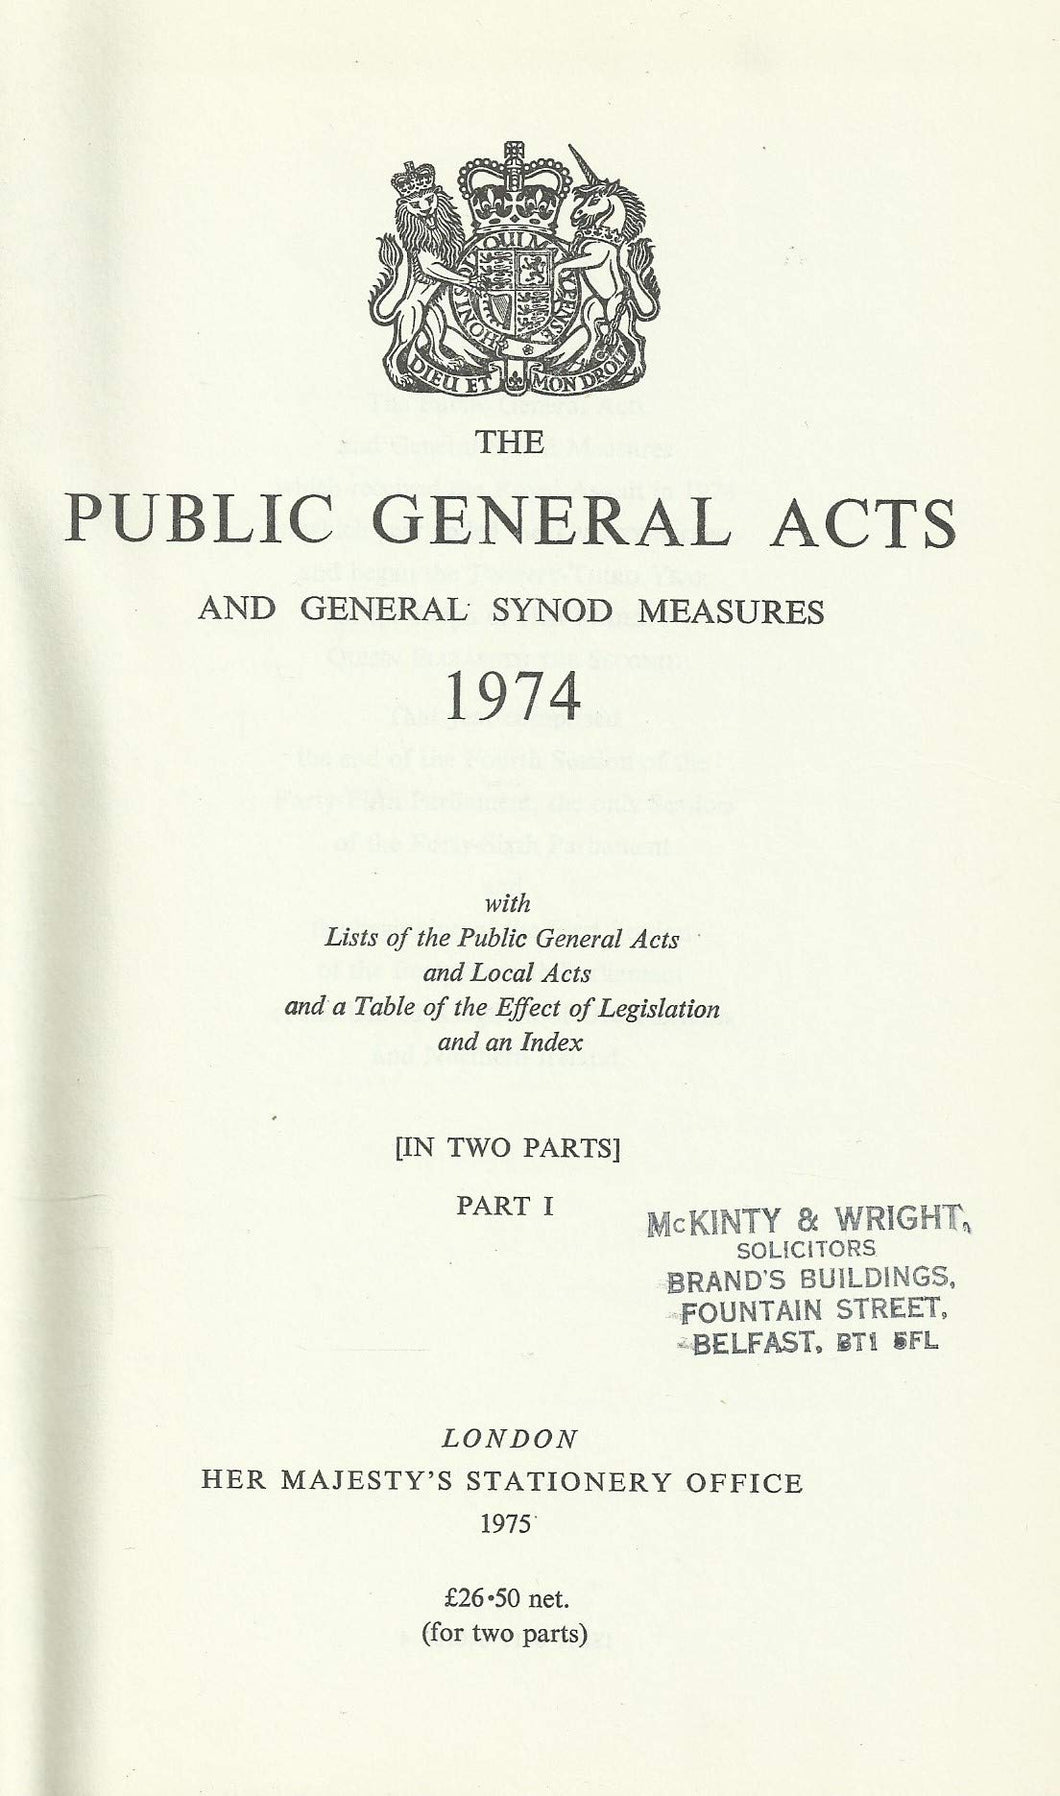 The Public General Acts and General Synod Measures 1974